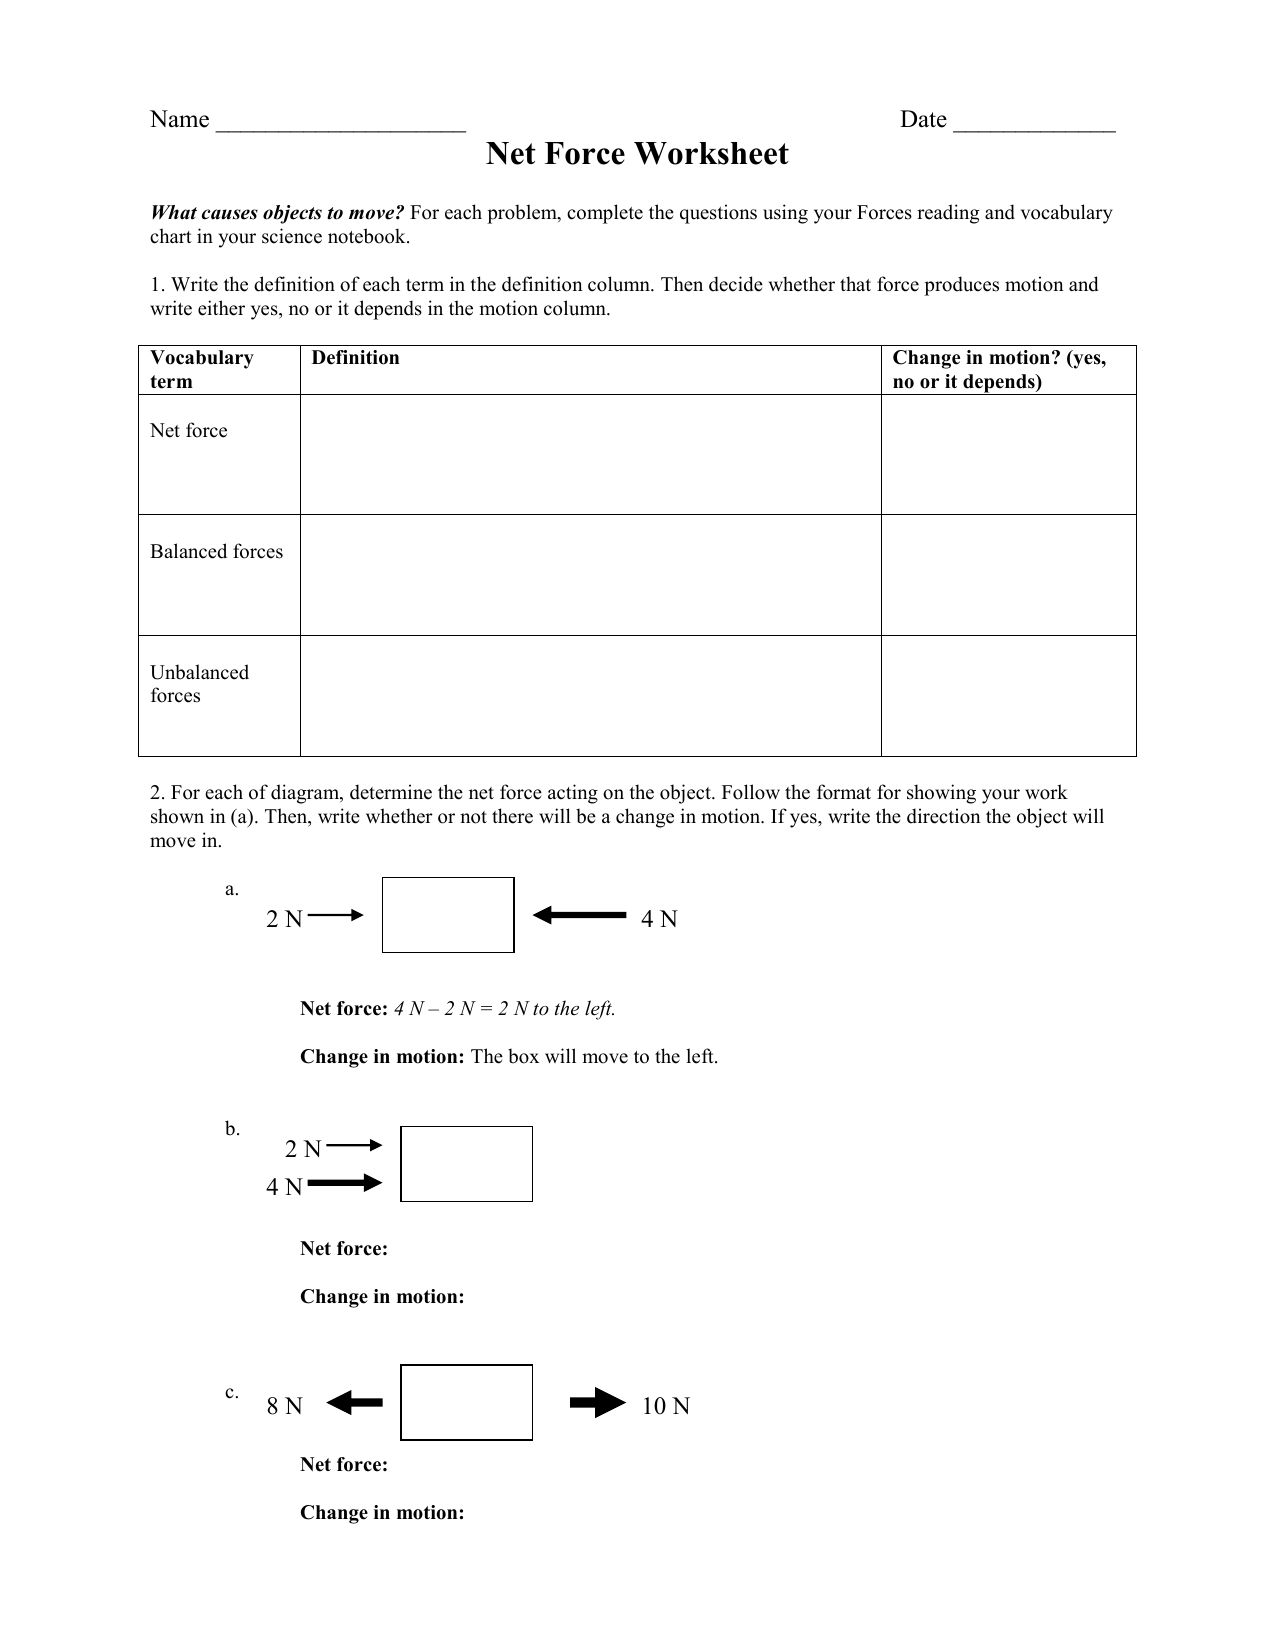 Net Force Worksheet Answers Db Excel